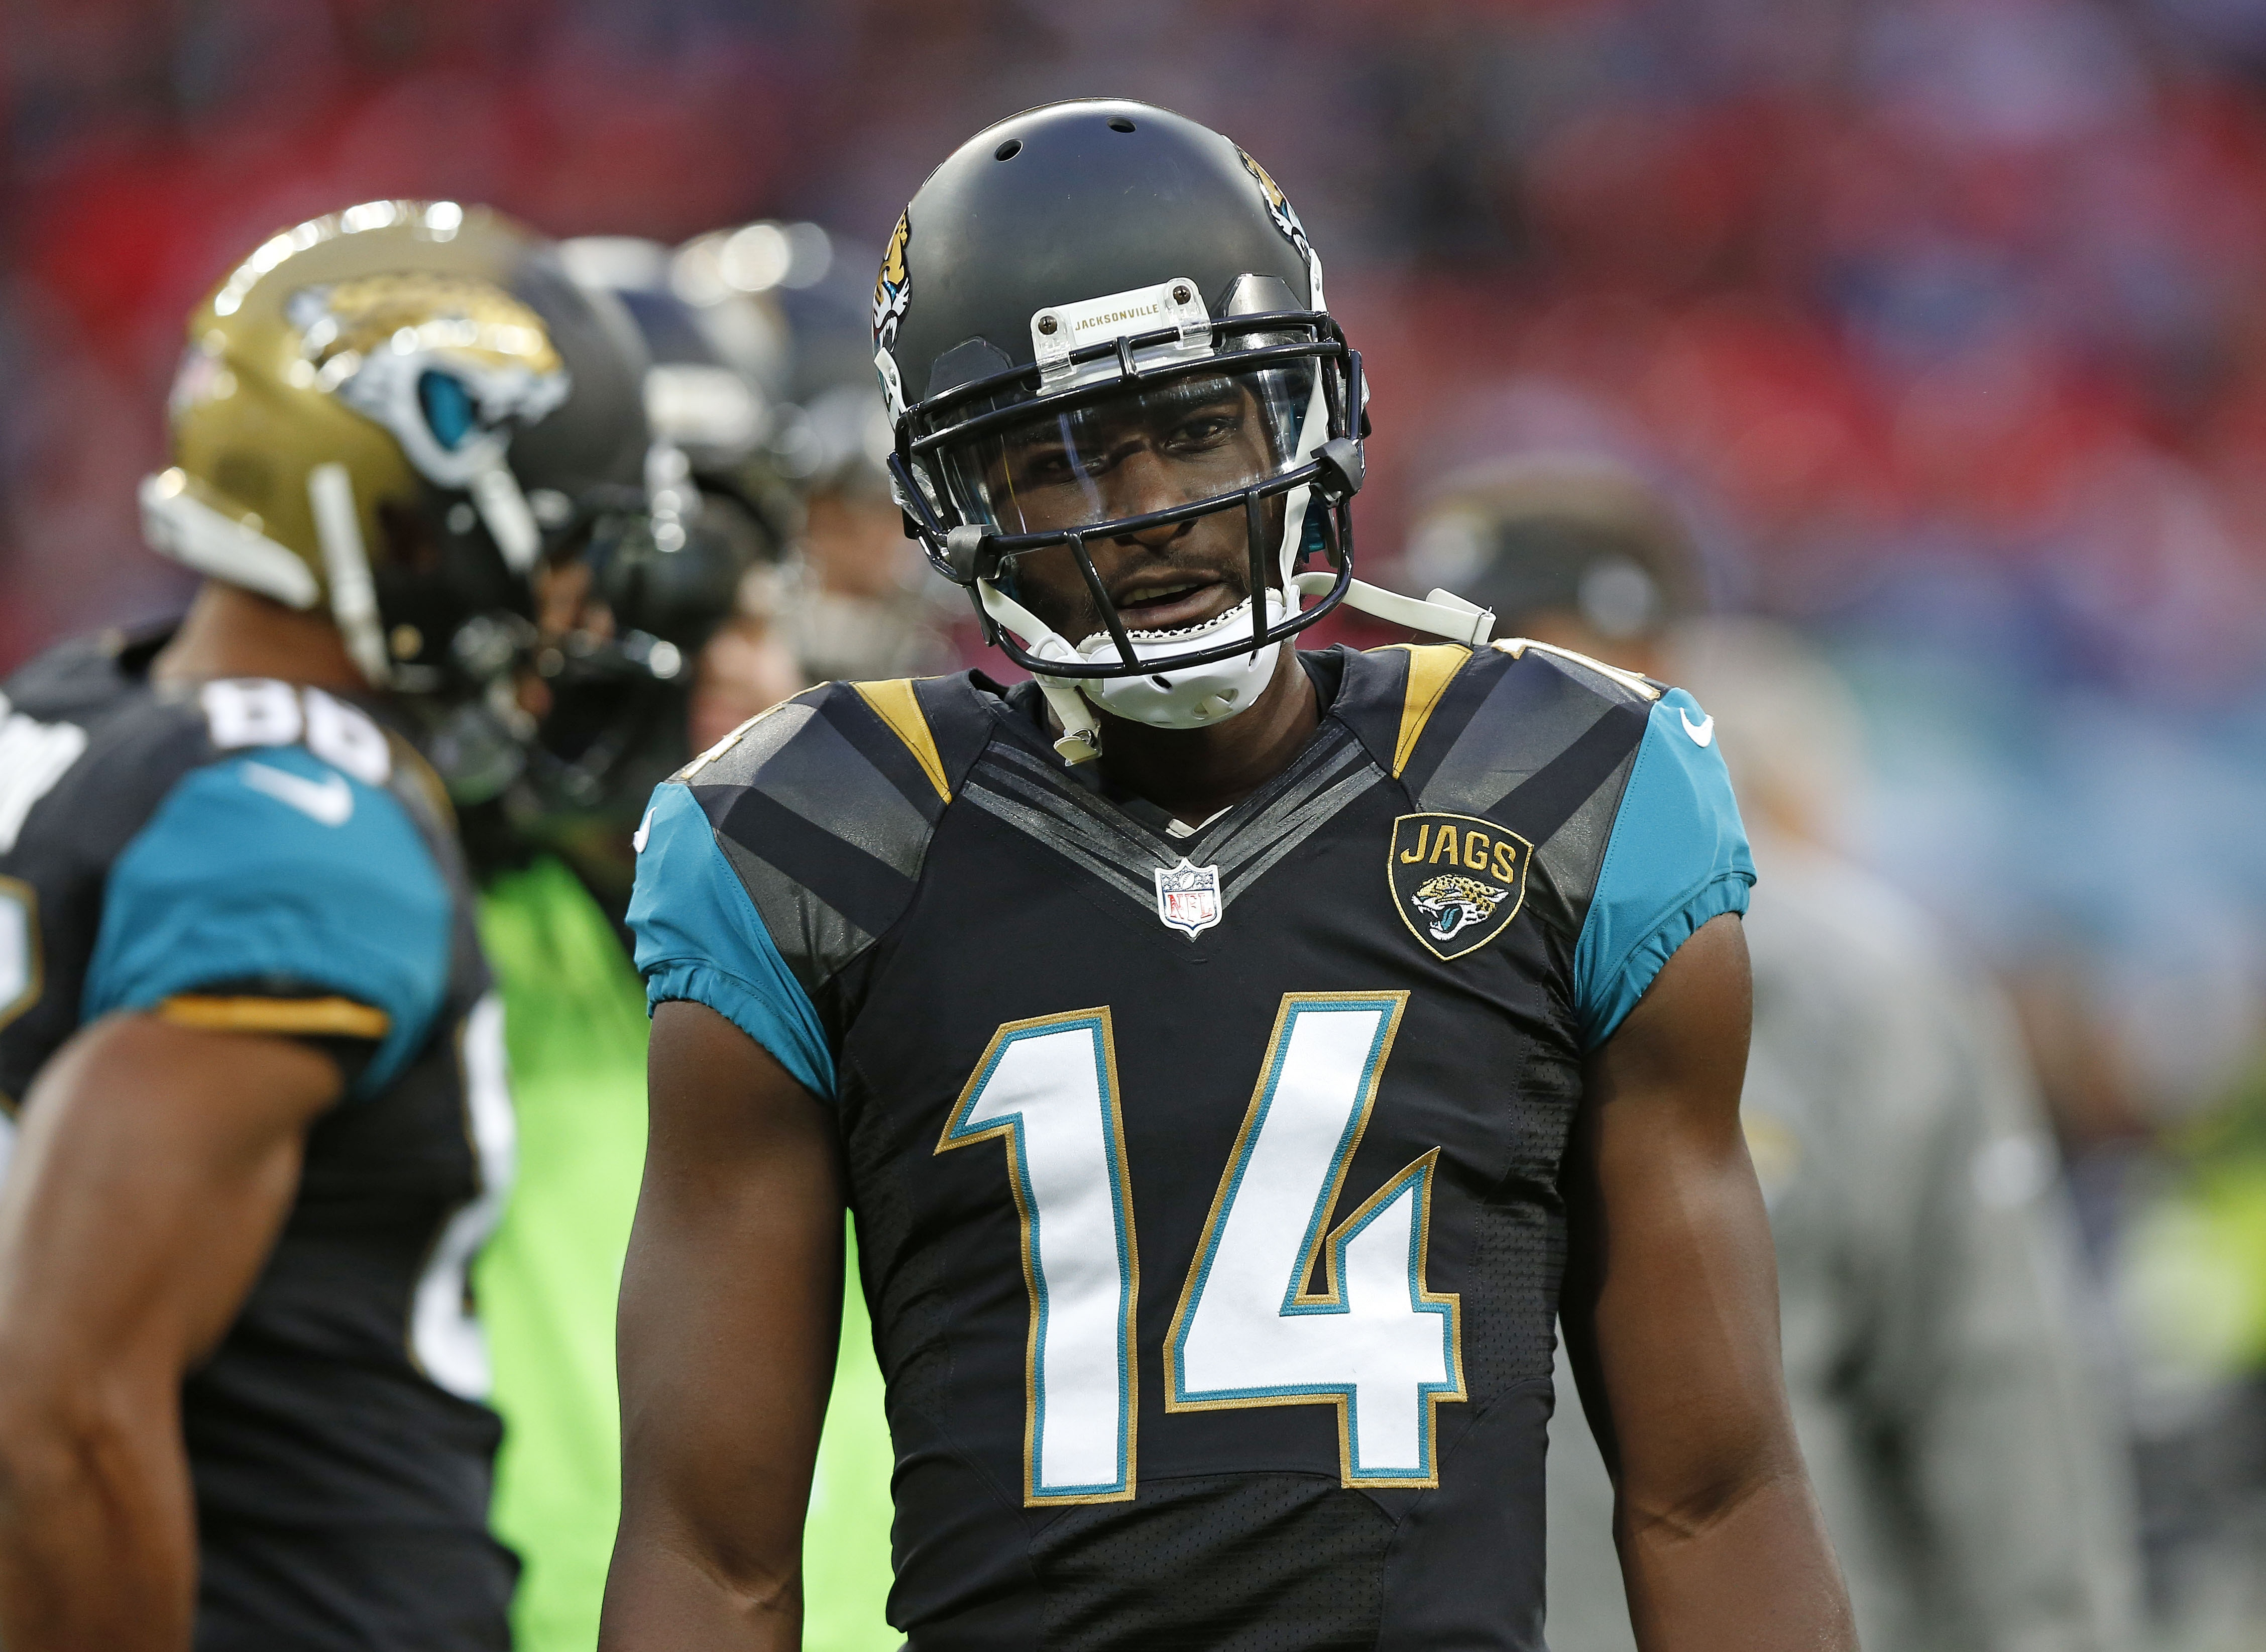 Jacksonville Jaguars wide receiver Justin Blackmon (14) walks onto the field for the warm-up at Wembley Stadium in London ahead of the NFL football game between San Francisco 49ers and Jacksonville Jaguars, Sunday, Oct. 27, 2013. (AP Photo/Sang Tan)